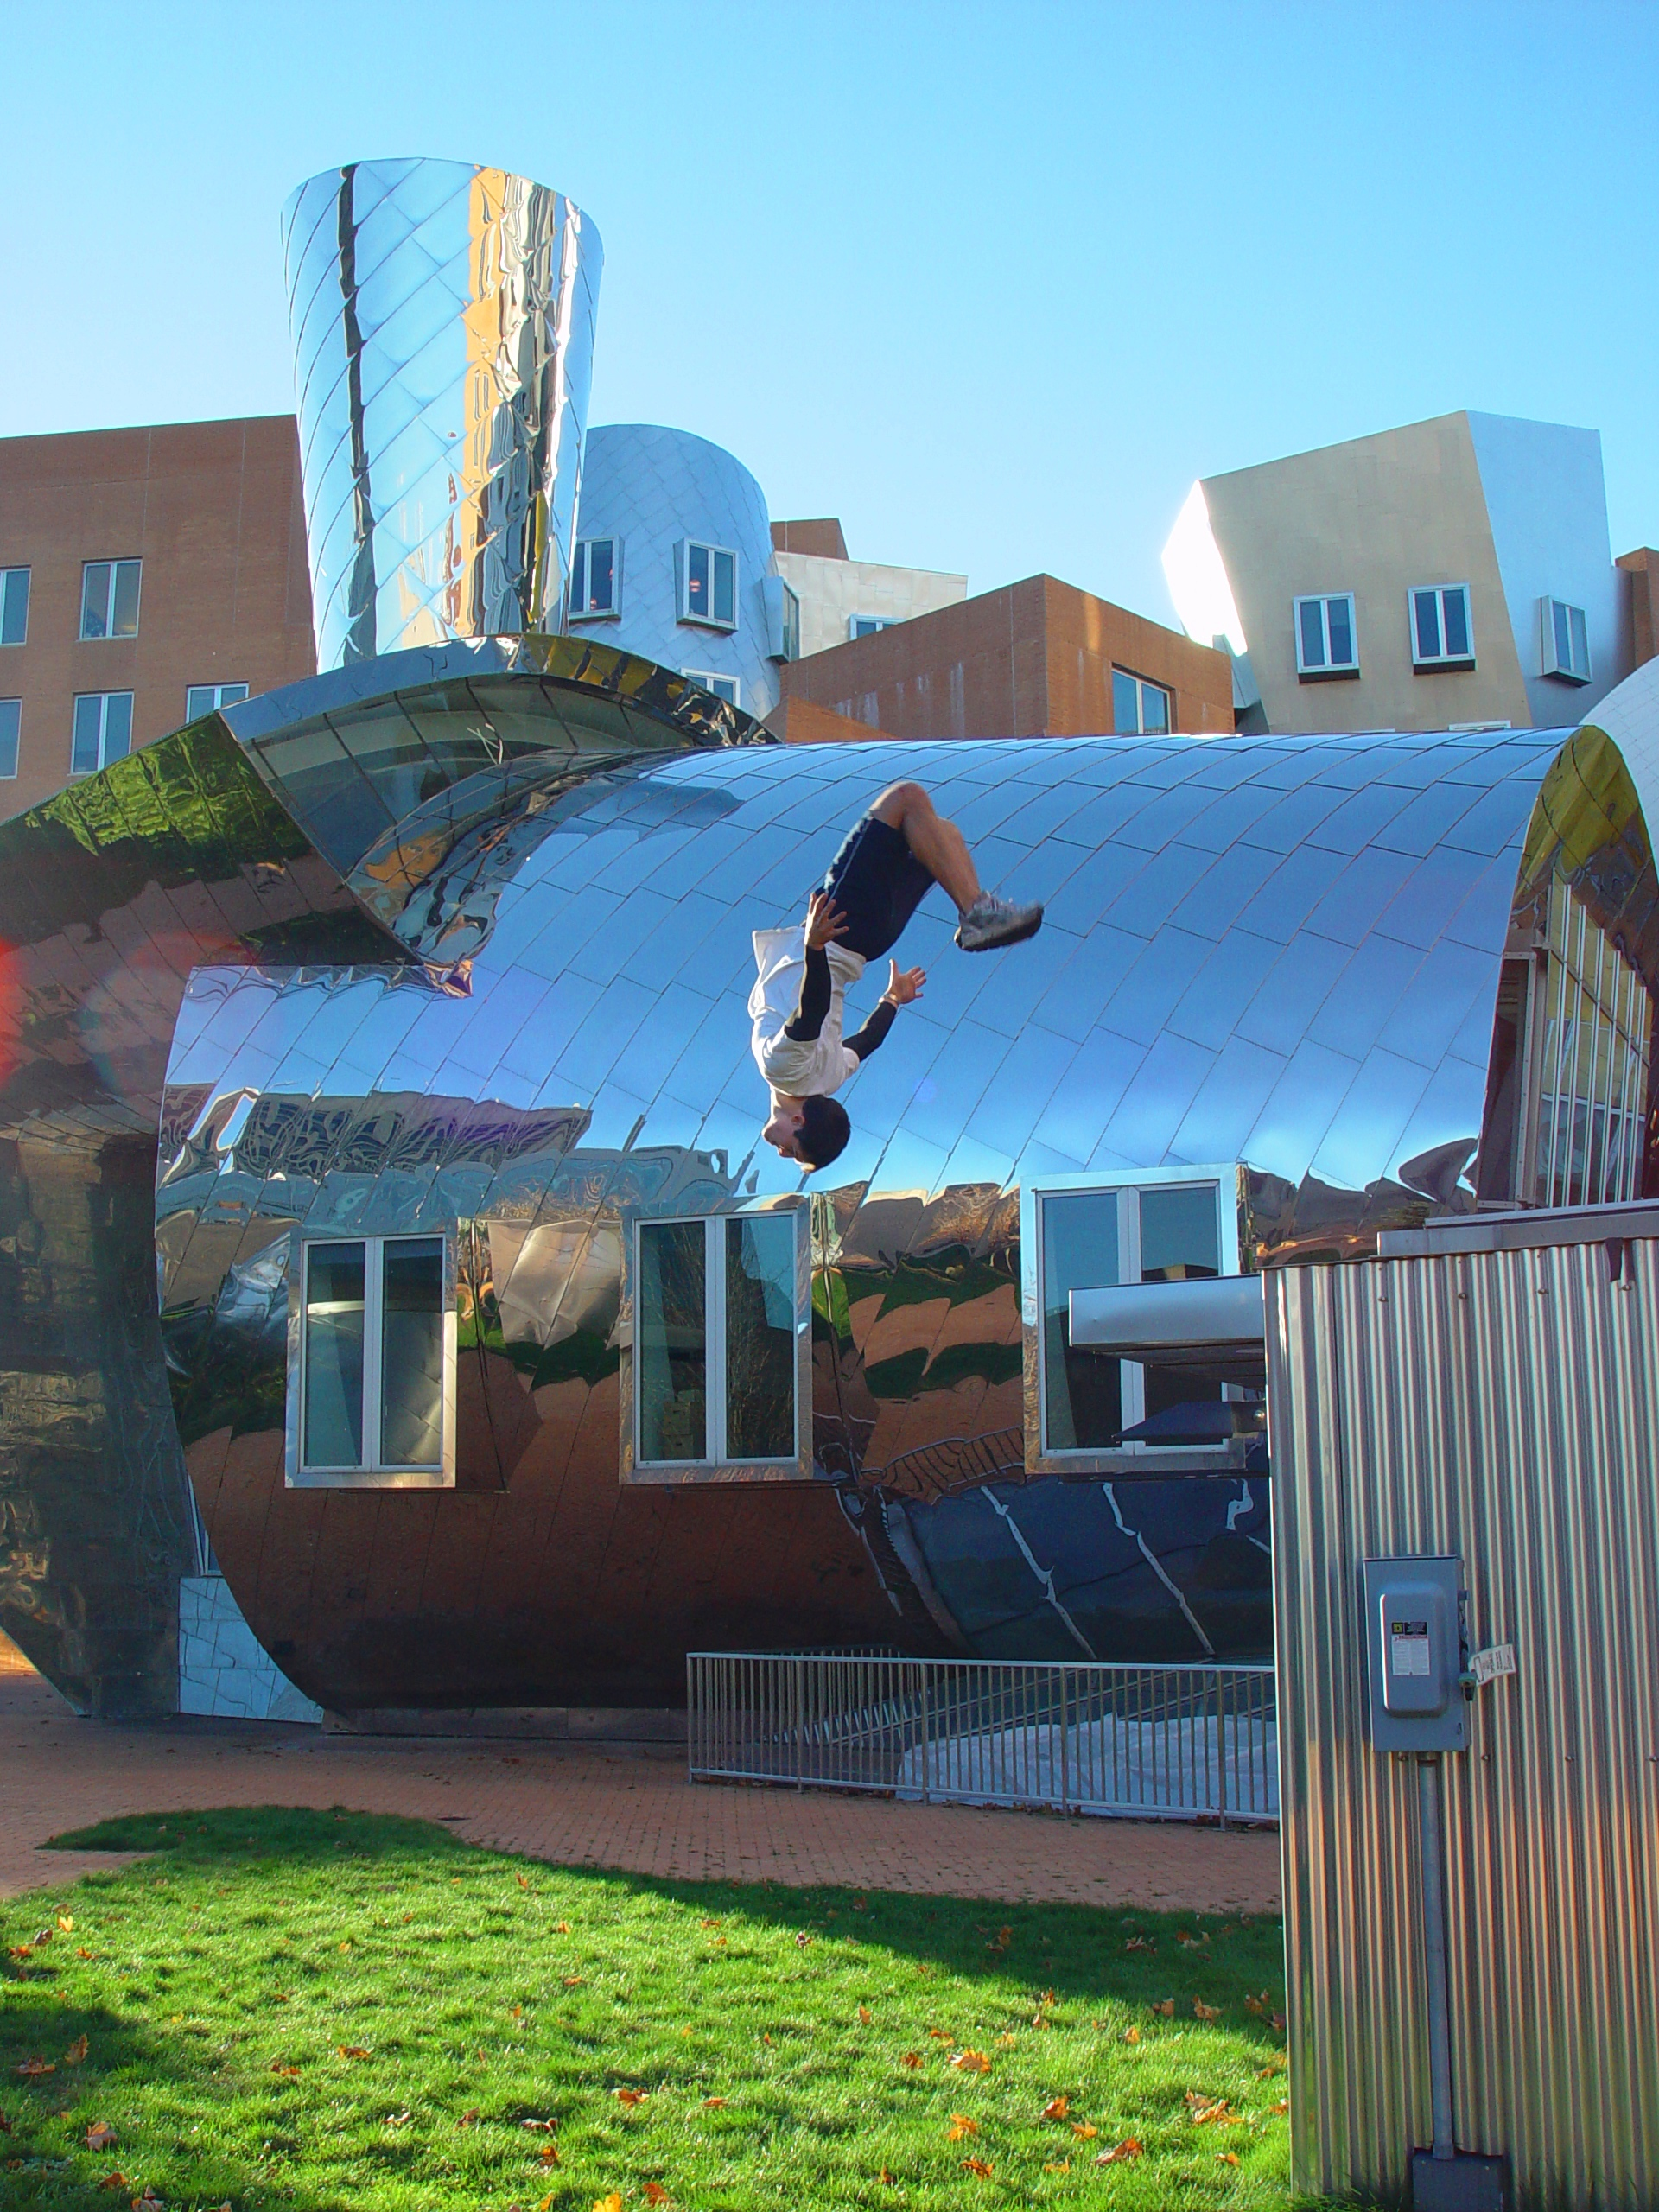 A totally sweet flip off of part of the Stata Center at MIT.